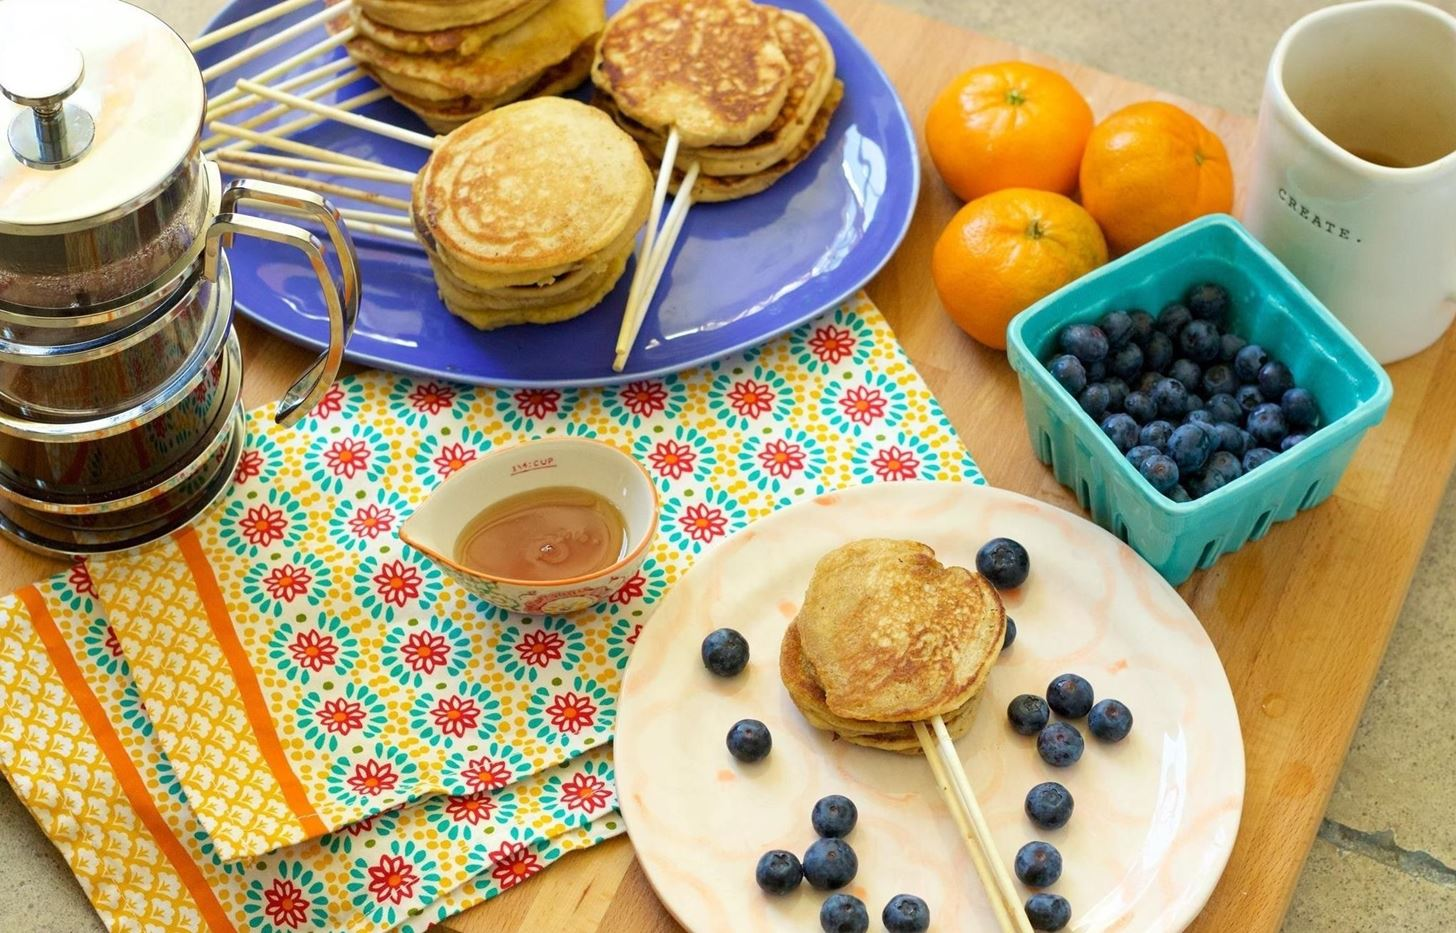 These Pancake Lollipops Will Make You Feel Like a Kid Again